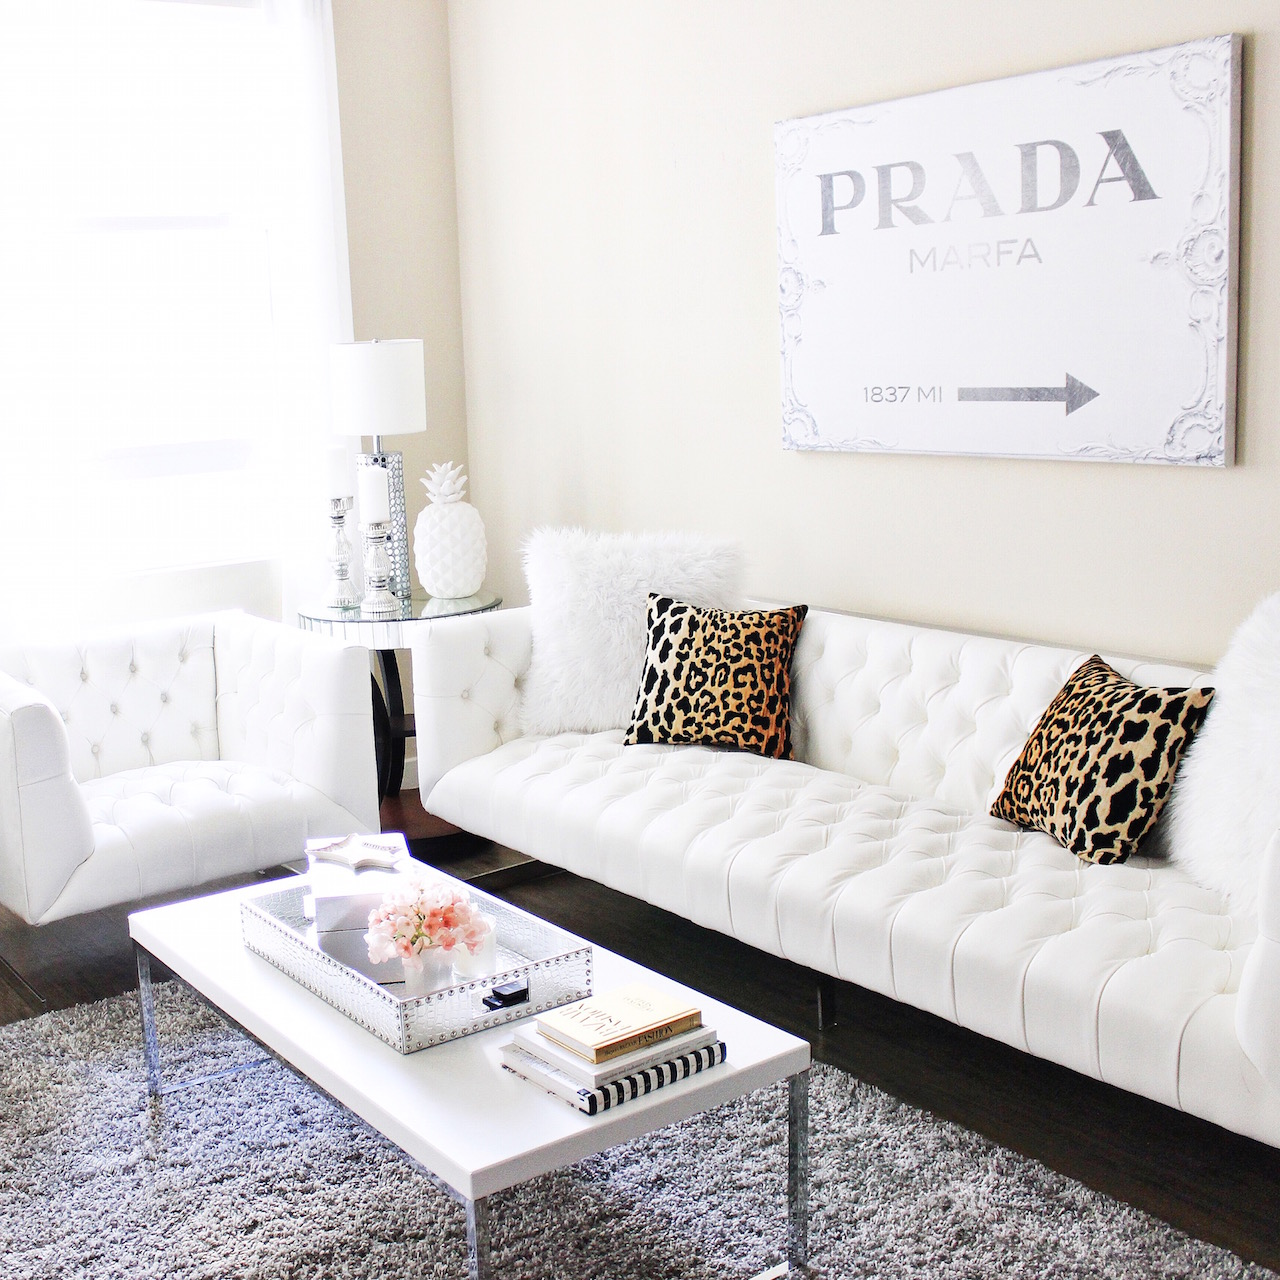 White Tuffed Couch | Leopard Pillows | Prada Canvas | White Living Room | StyledByBlondie.com